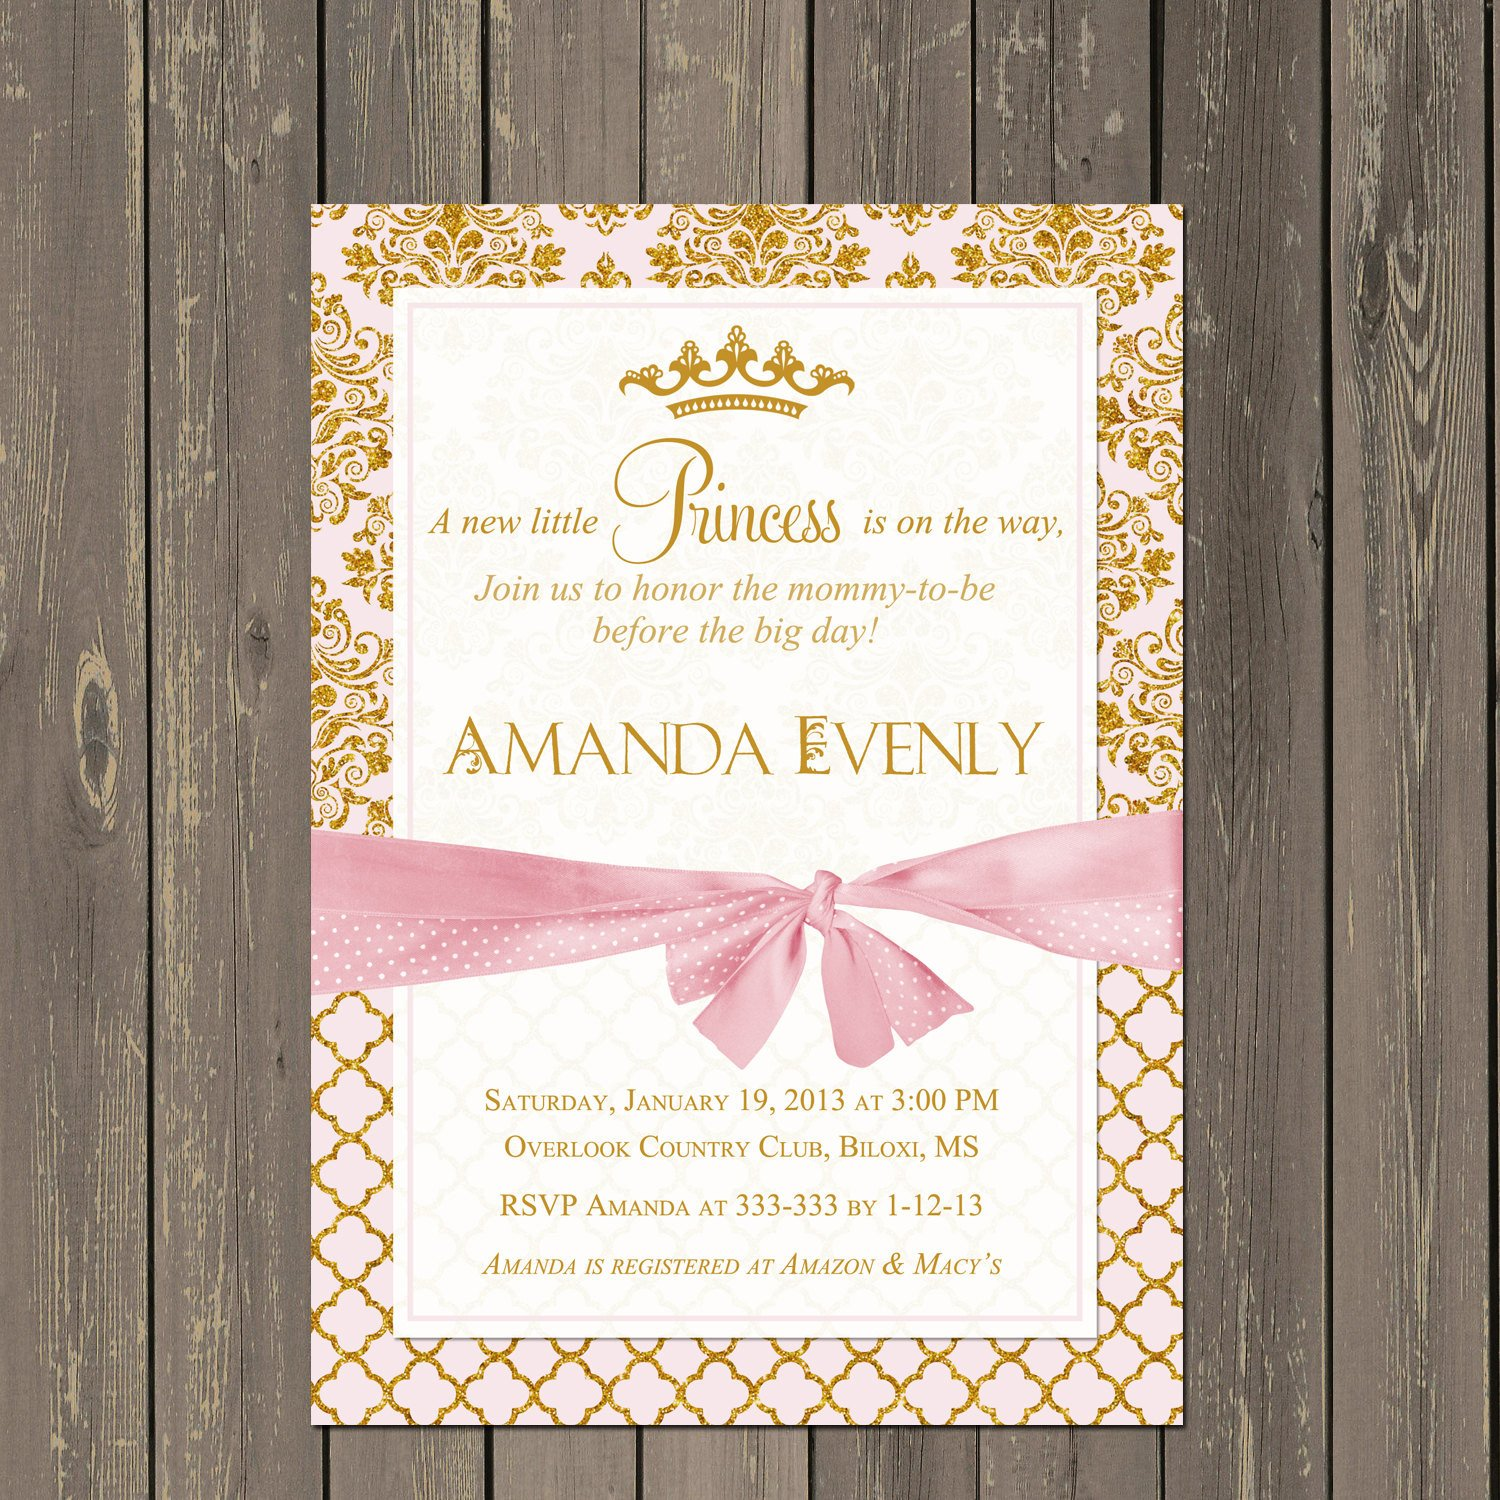 Princess Baby Shower Invitations Templates Princess Baby Shower Invitation Pink and Gold Princess Shower